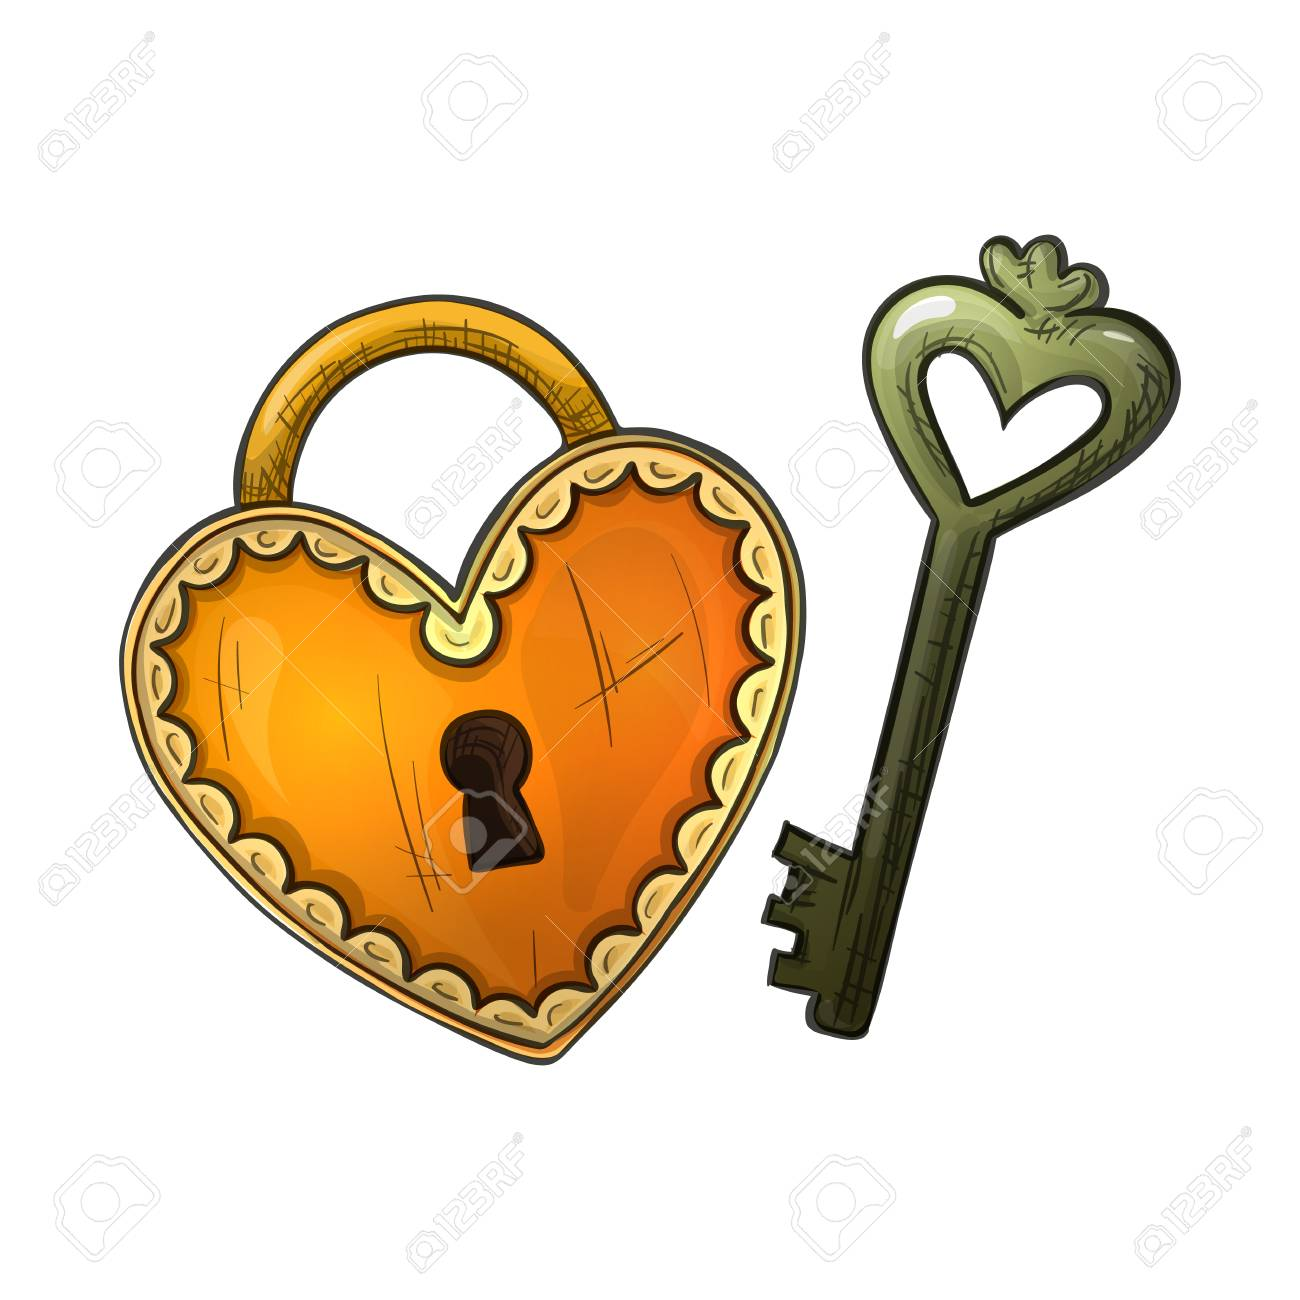 Colorful Sketch Style Illustration Of Heart Shape Lock And Key